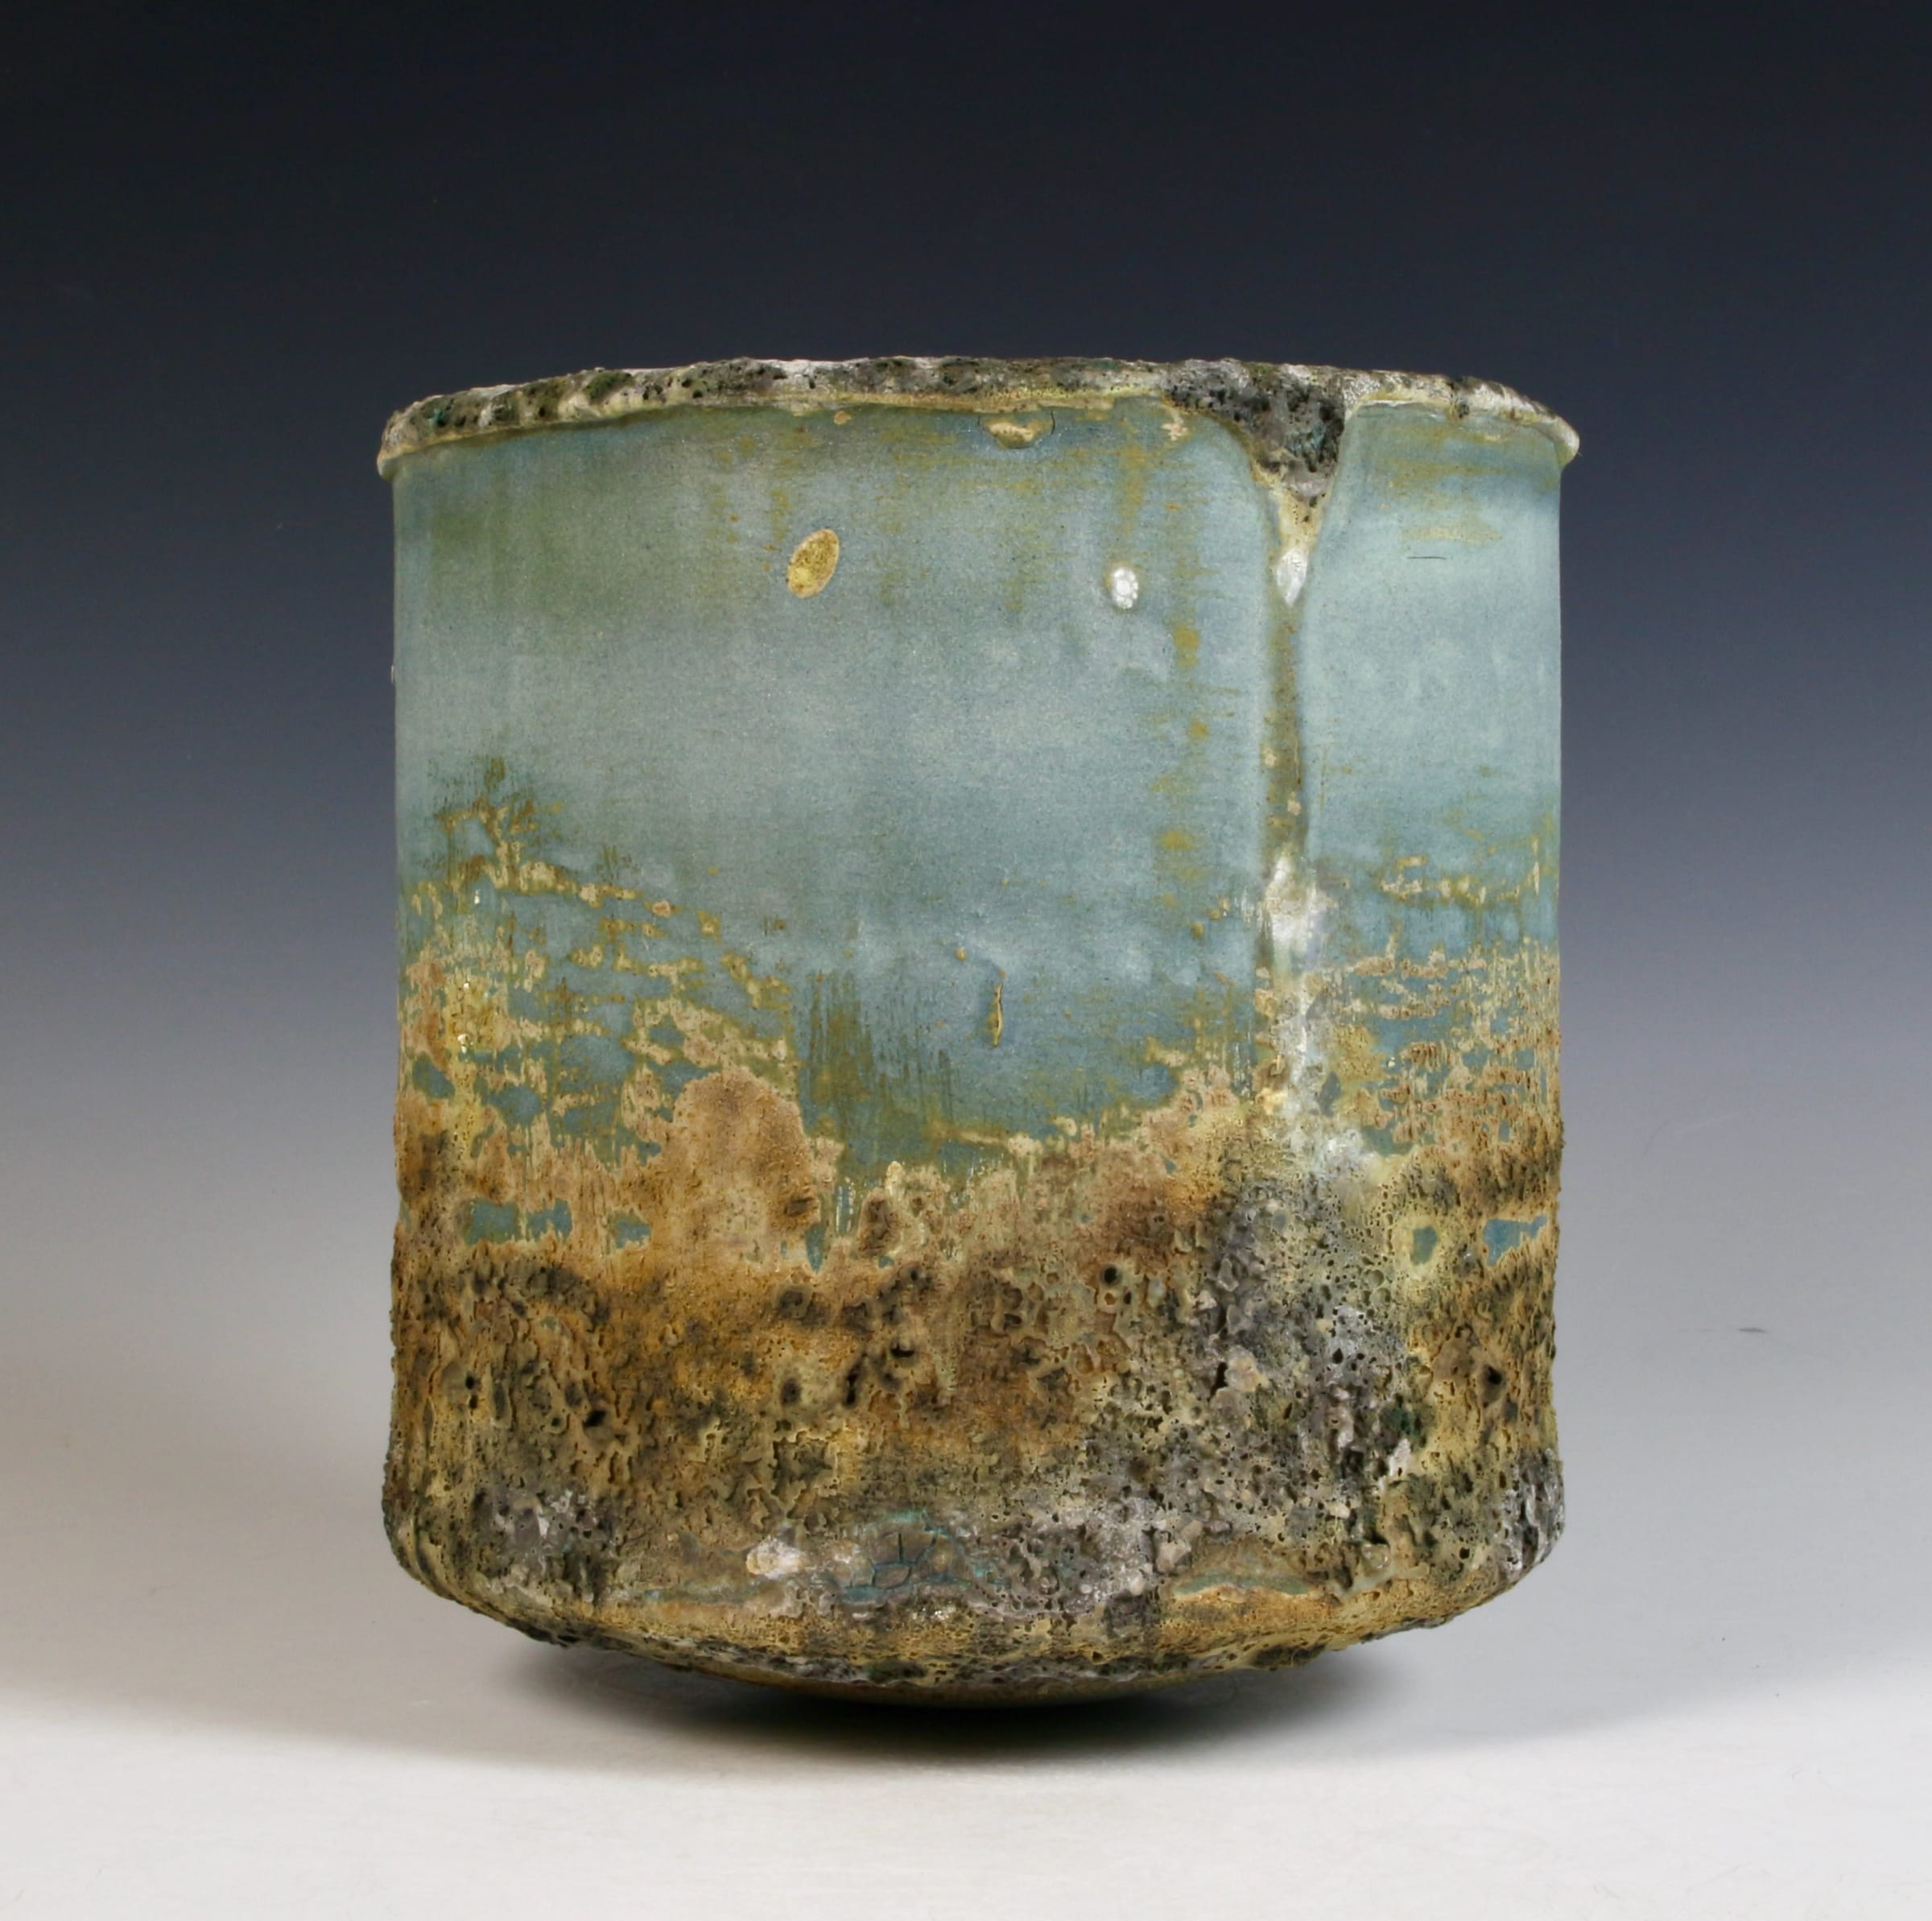 """<span class=""""link fancybox-details-link""""><a href=""""/content/feature/40/artworks8001/"""">View Detail Page</a></span><div class=""""signed_and_dated"""">impressed seal mark 'PW'</div> <div class=""""medium"""">stoneware, multiple slips and glazes</div> <div class=""""dimensions"""">16 x 15 cm</div>"""